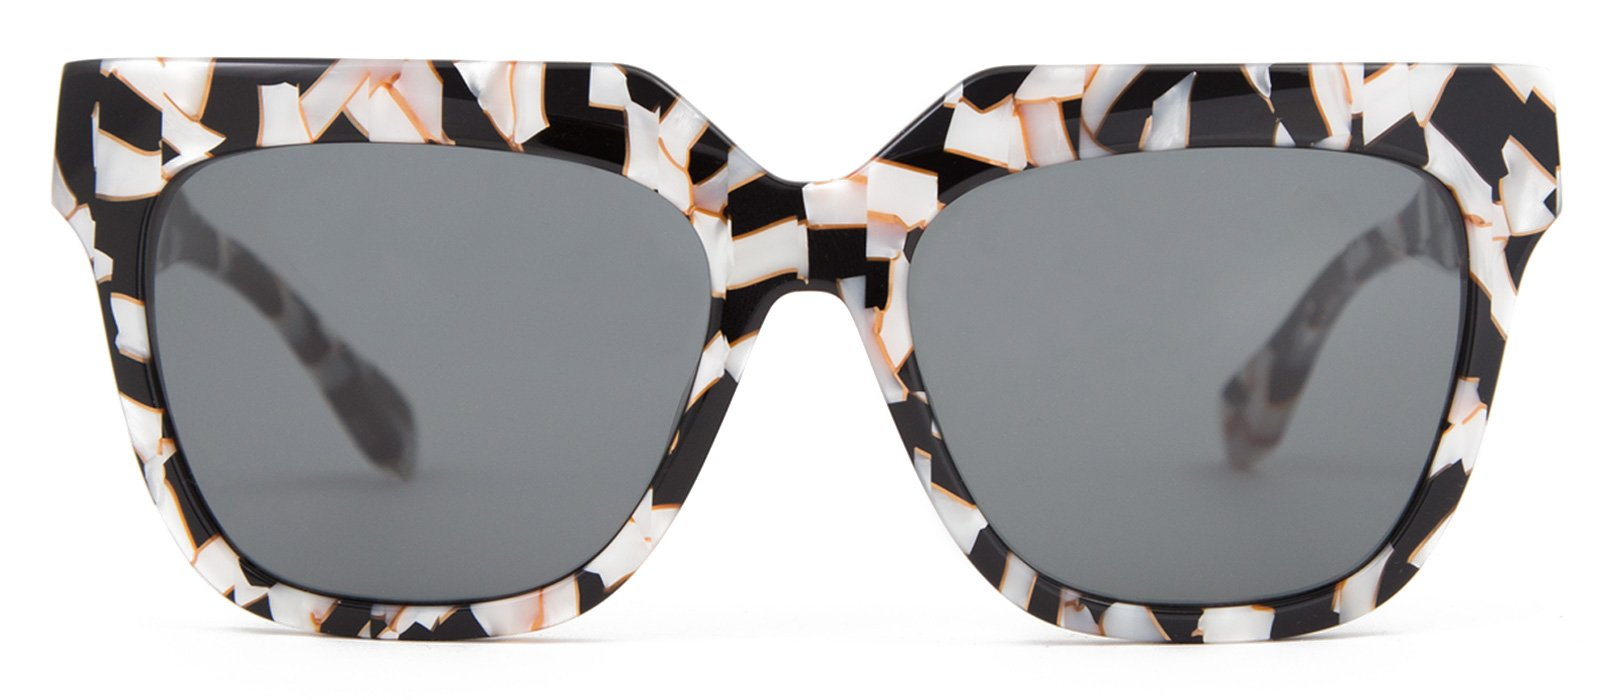 Sonix Women's Avalon Sunglasses, Luxe Marble/Black, One Size